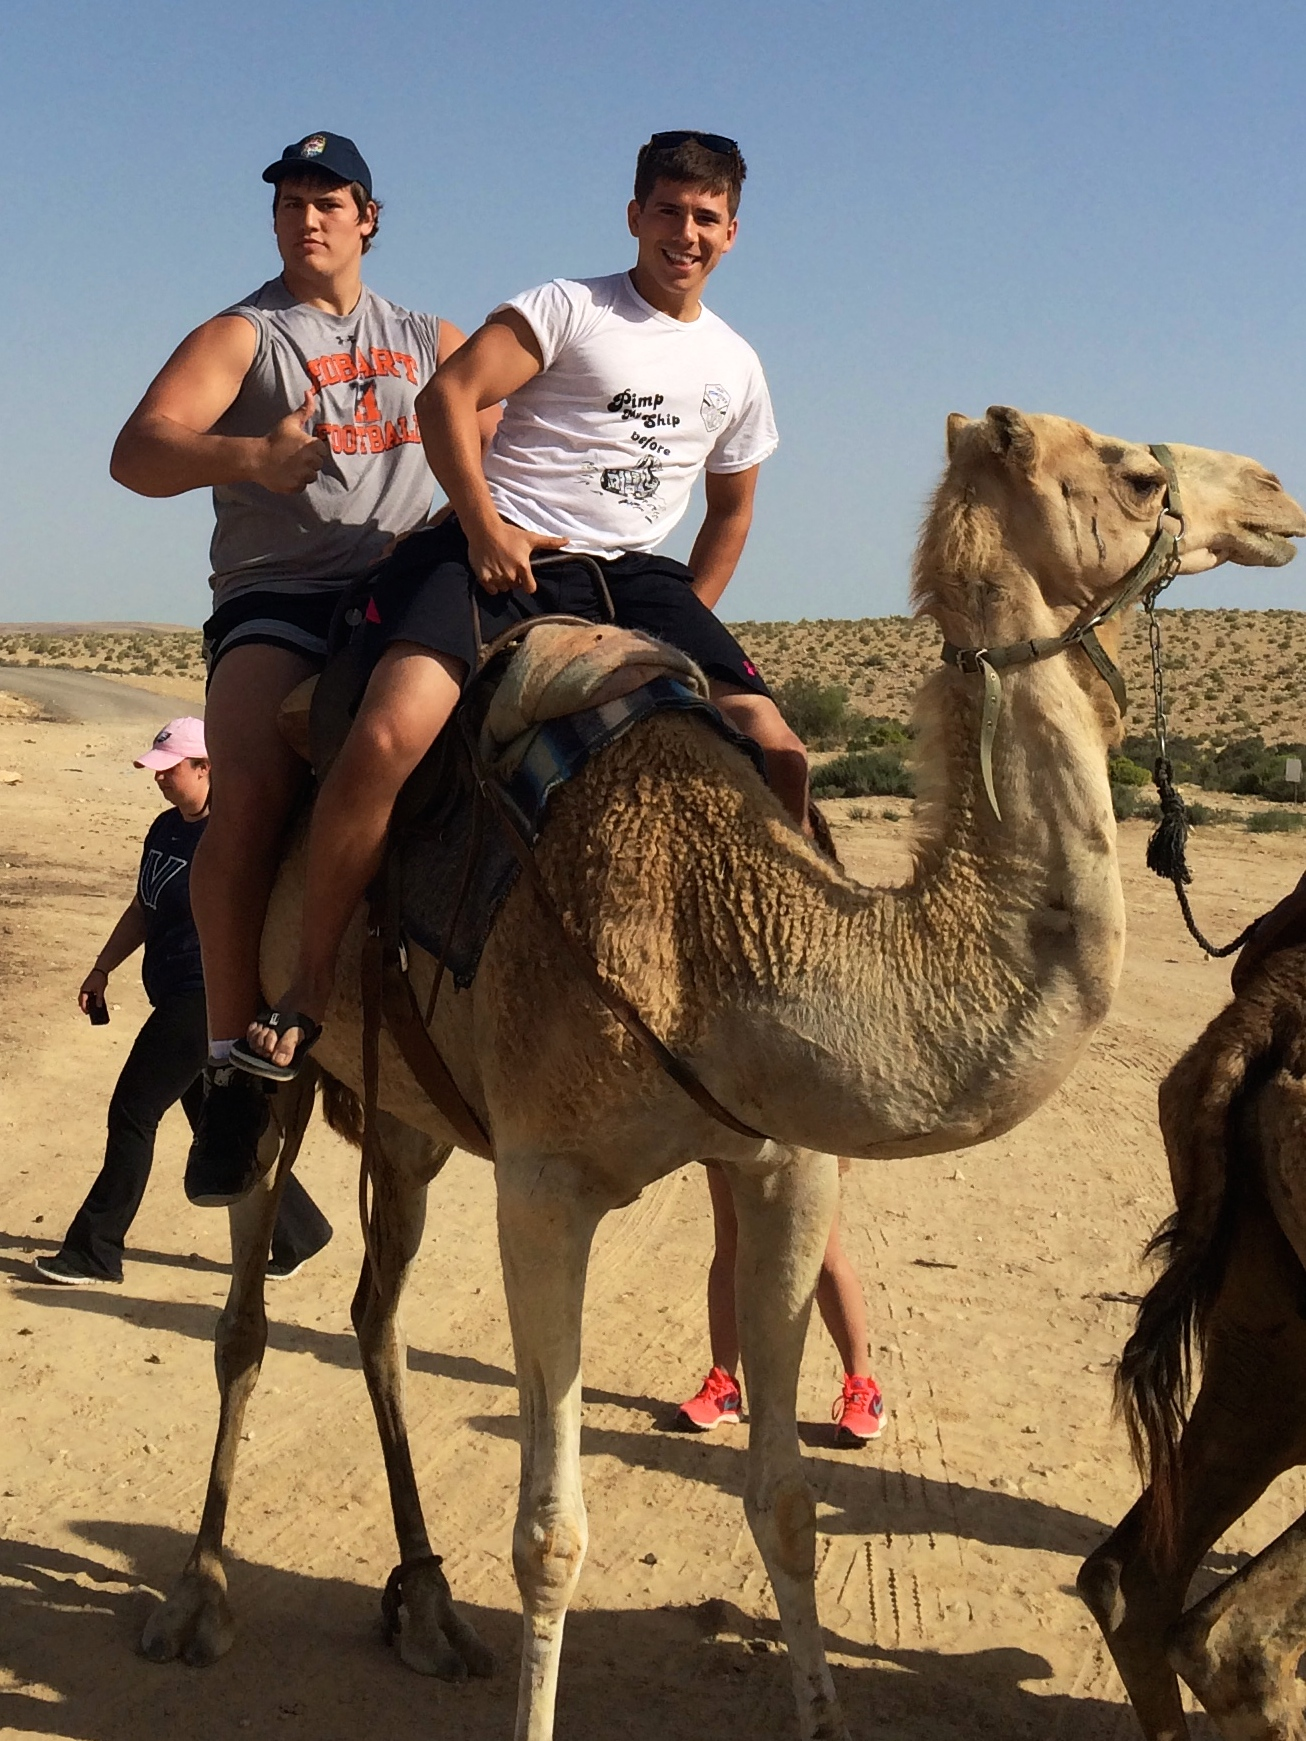 Hump day: Ali Marpet, in rear, and his longtime friend Jake Fuerst riding a camel during a Birthright Israel trip in the summer of 2014. (Courtesy of Jake Fuerst)